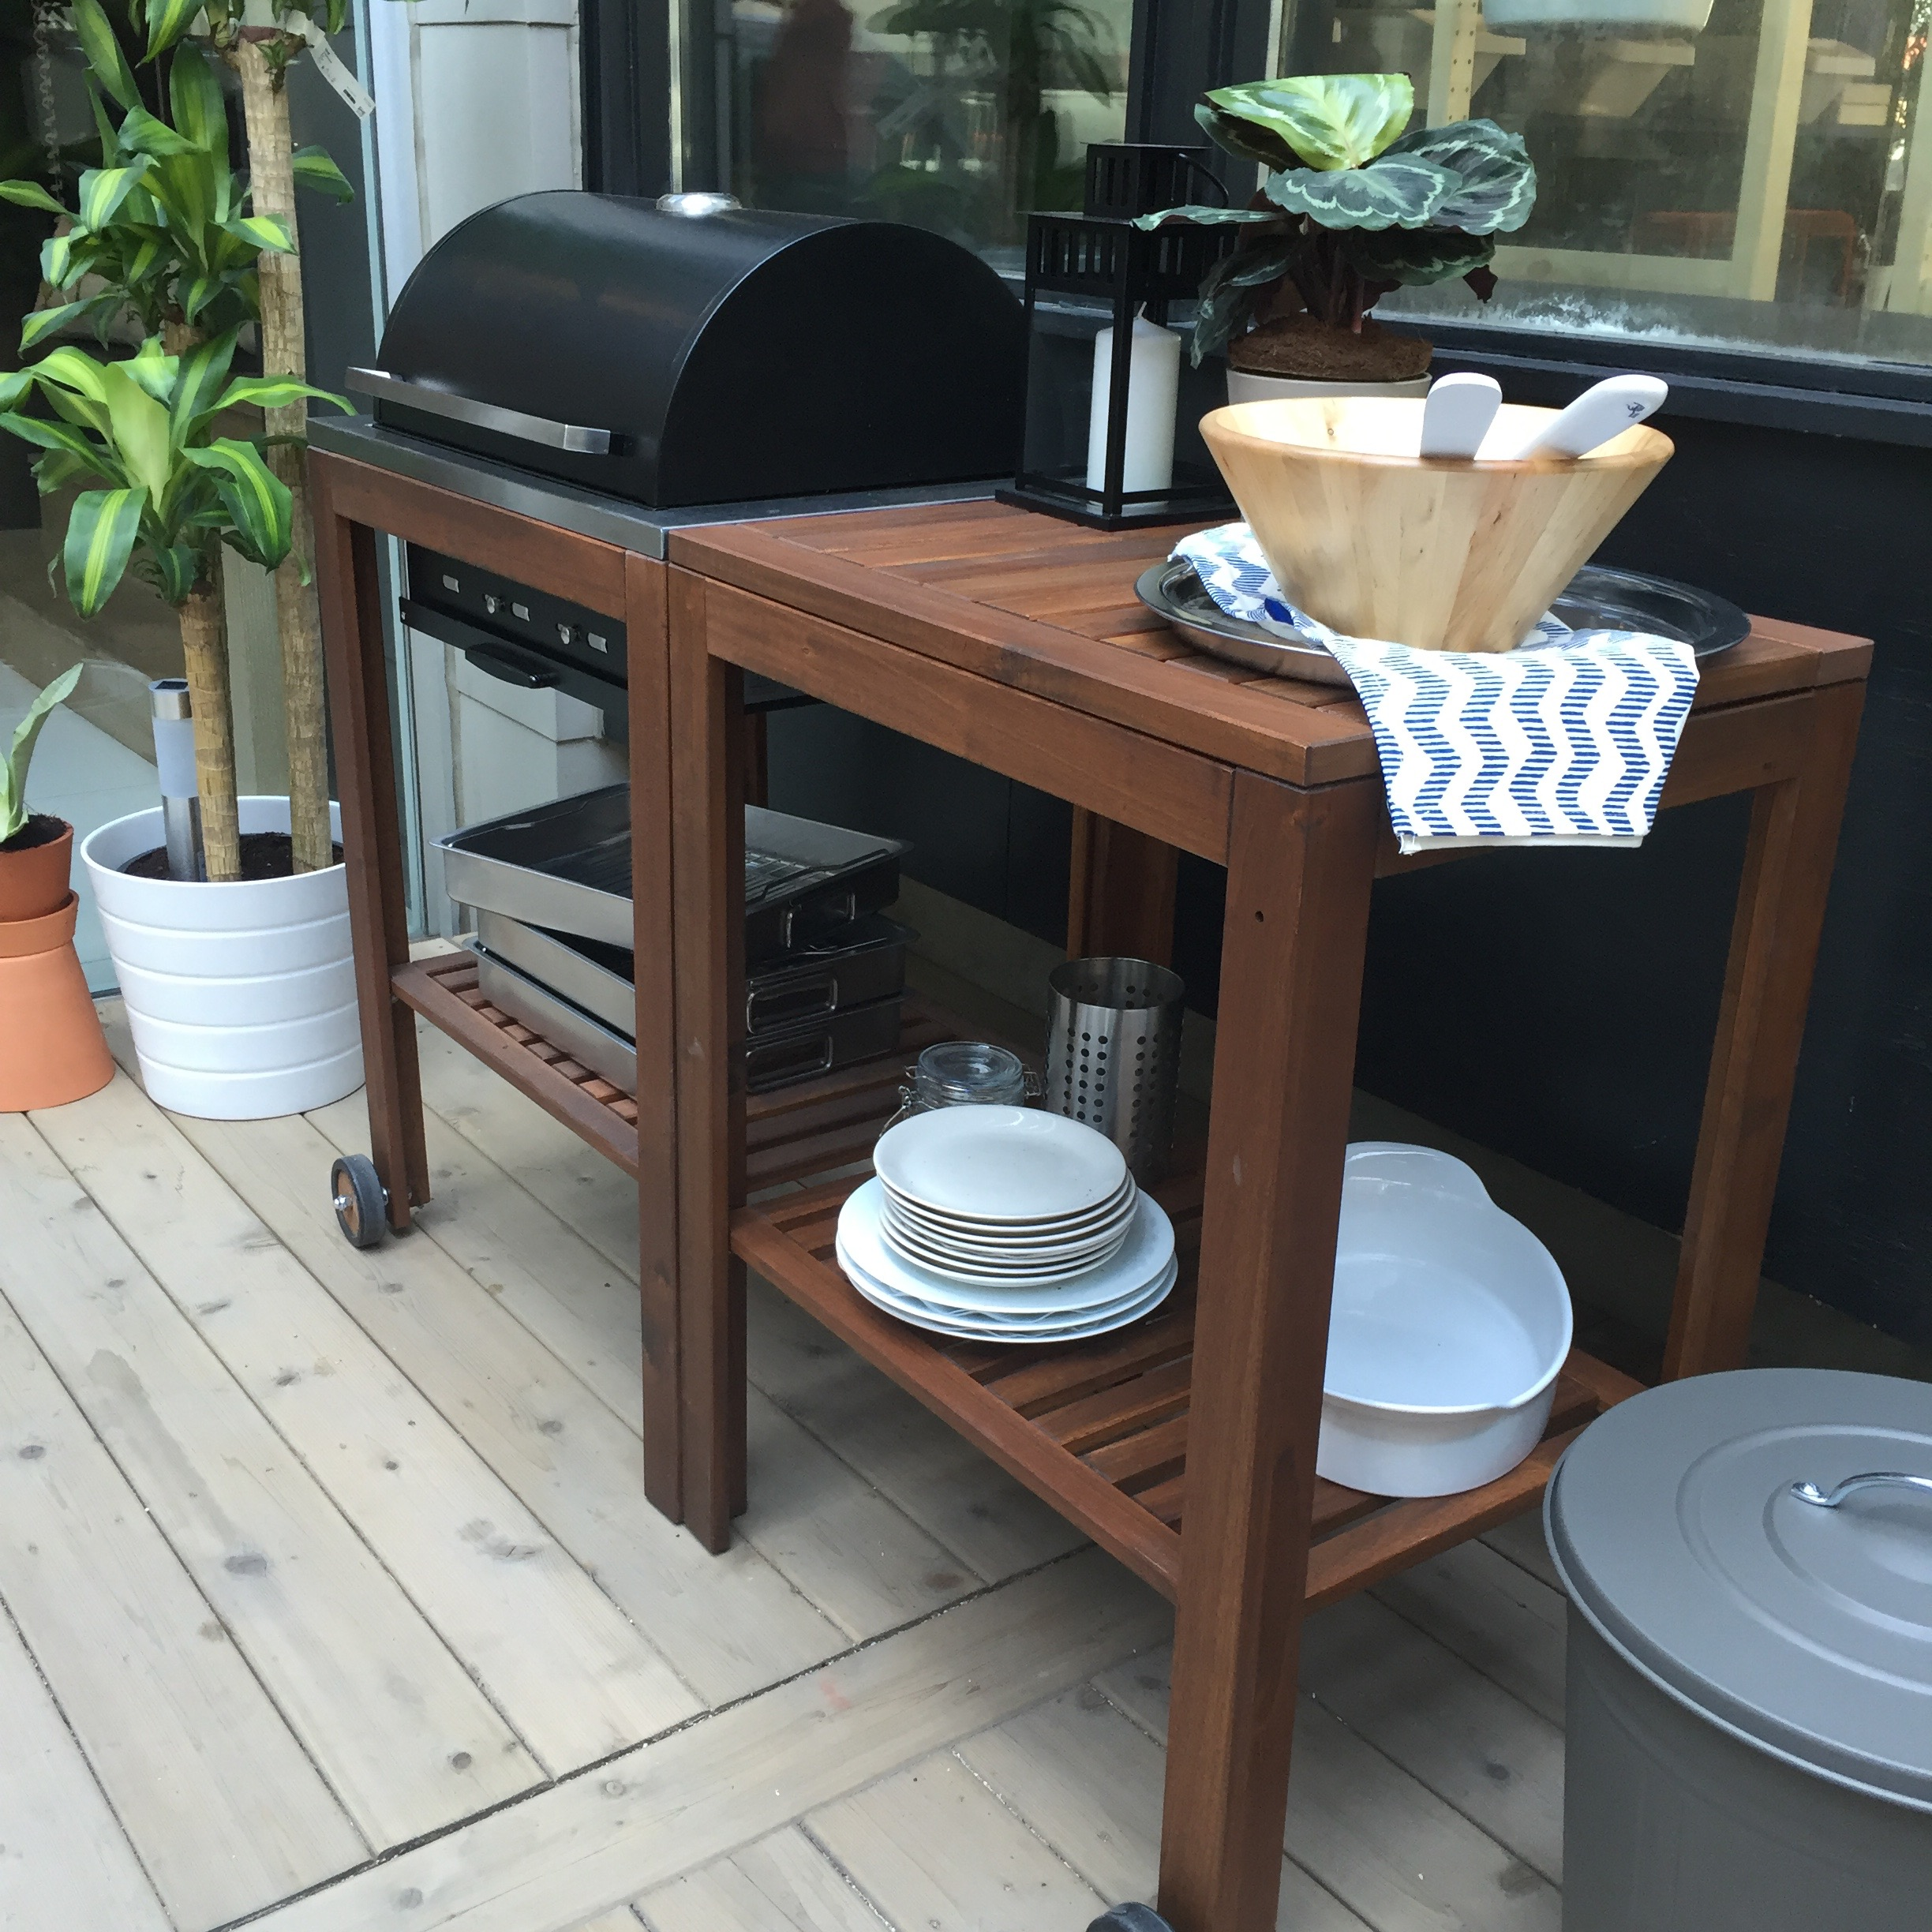 IKEA makes a fine looking grill.